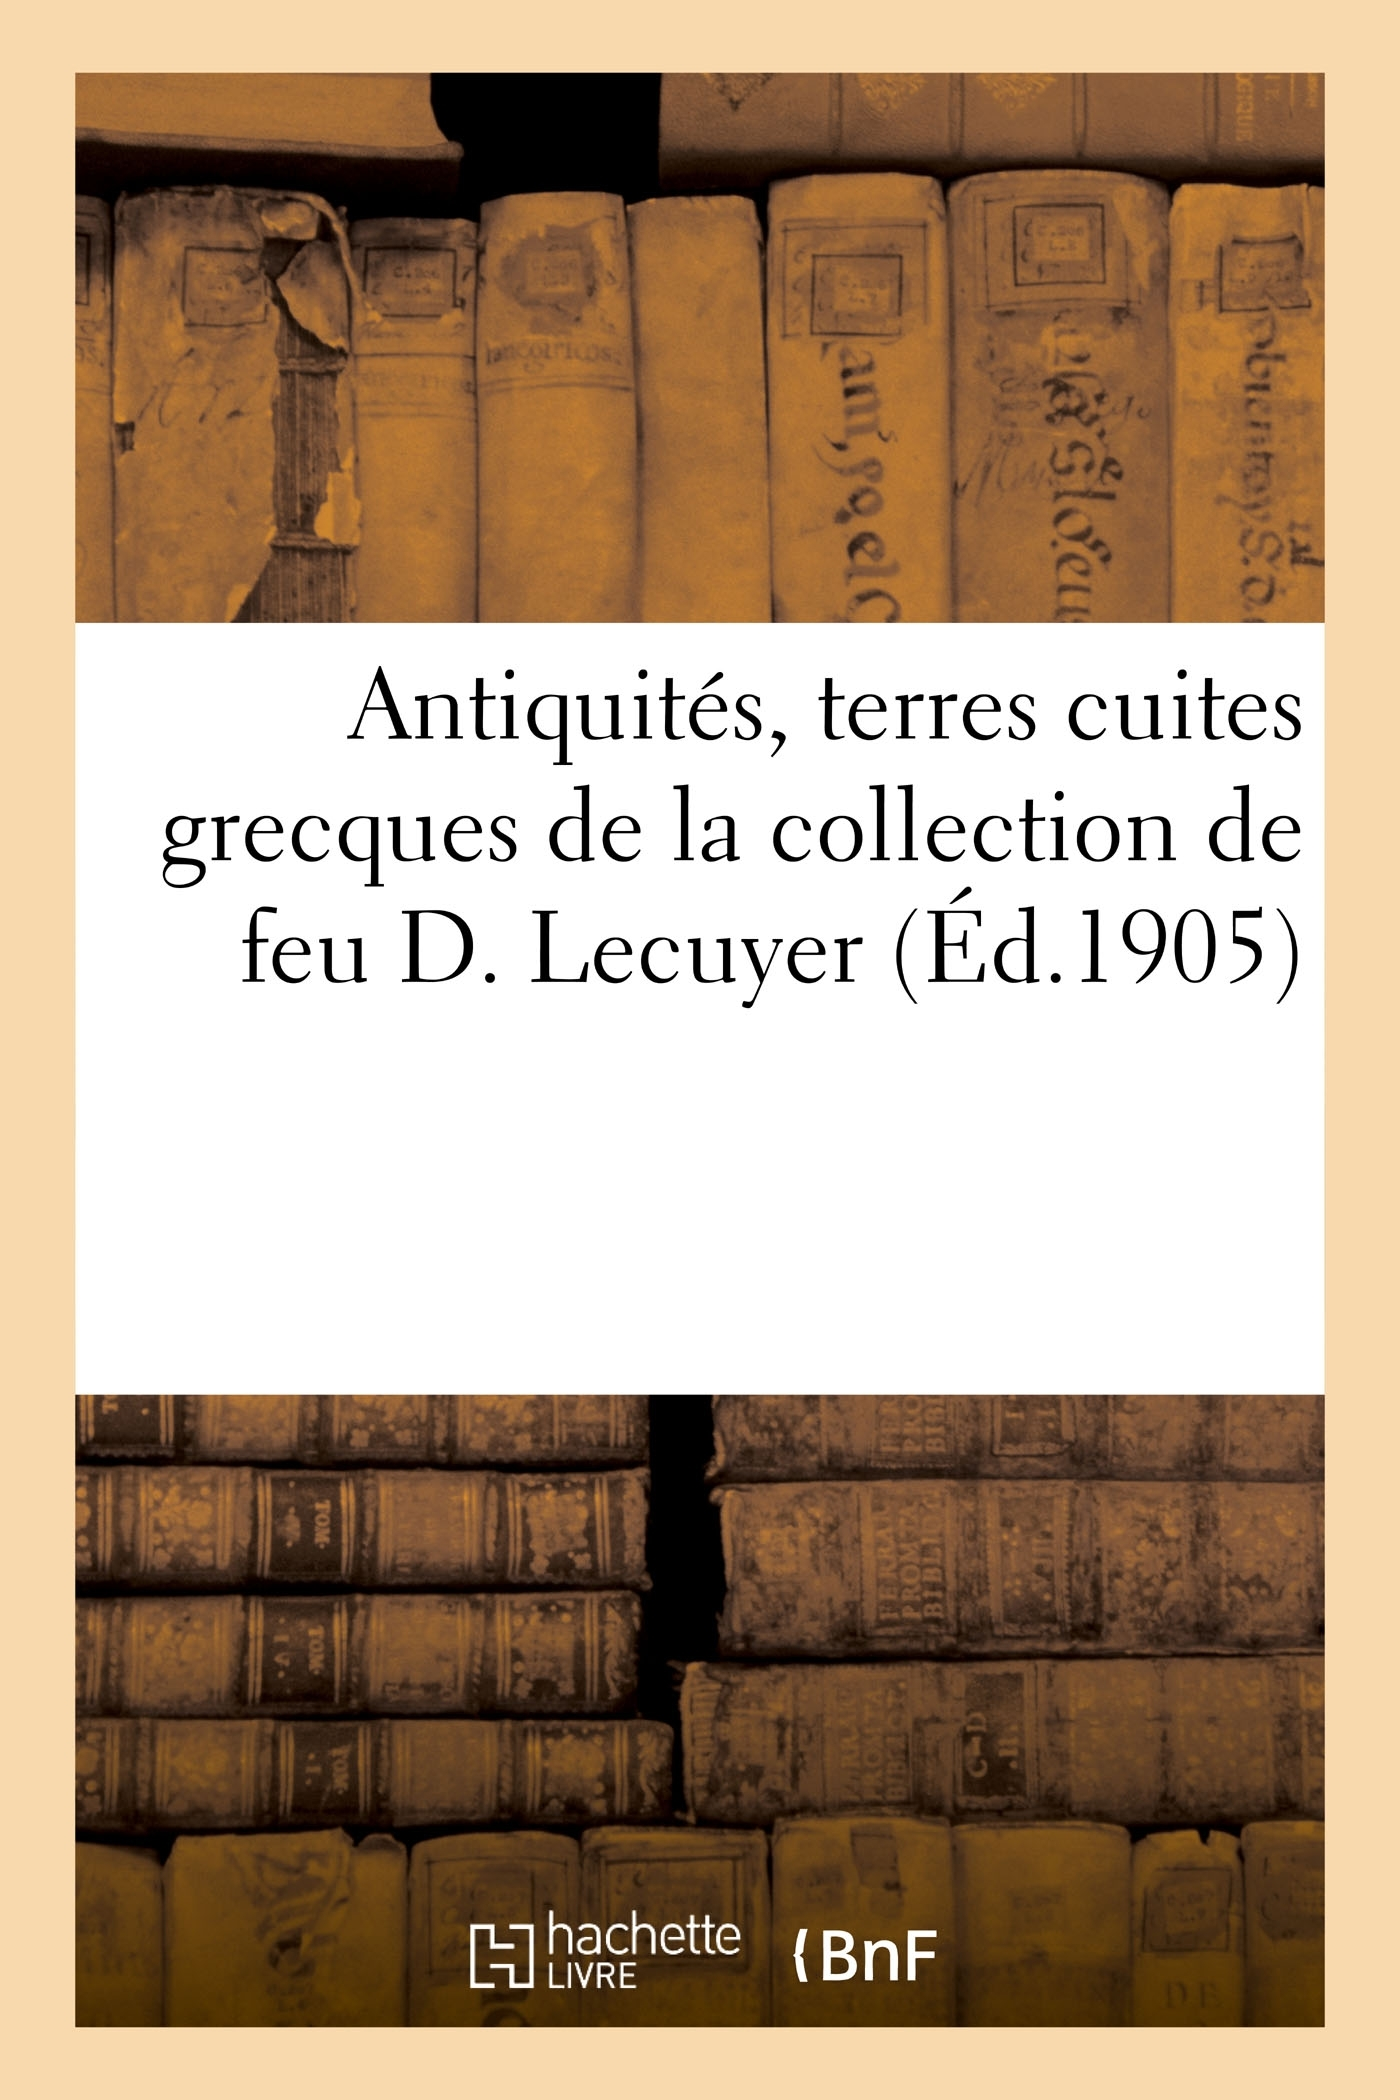 ANTIQUITES, TERRES CUITES GRECQUES DE LA COLLECTION DE FEU D. LECUYER